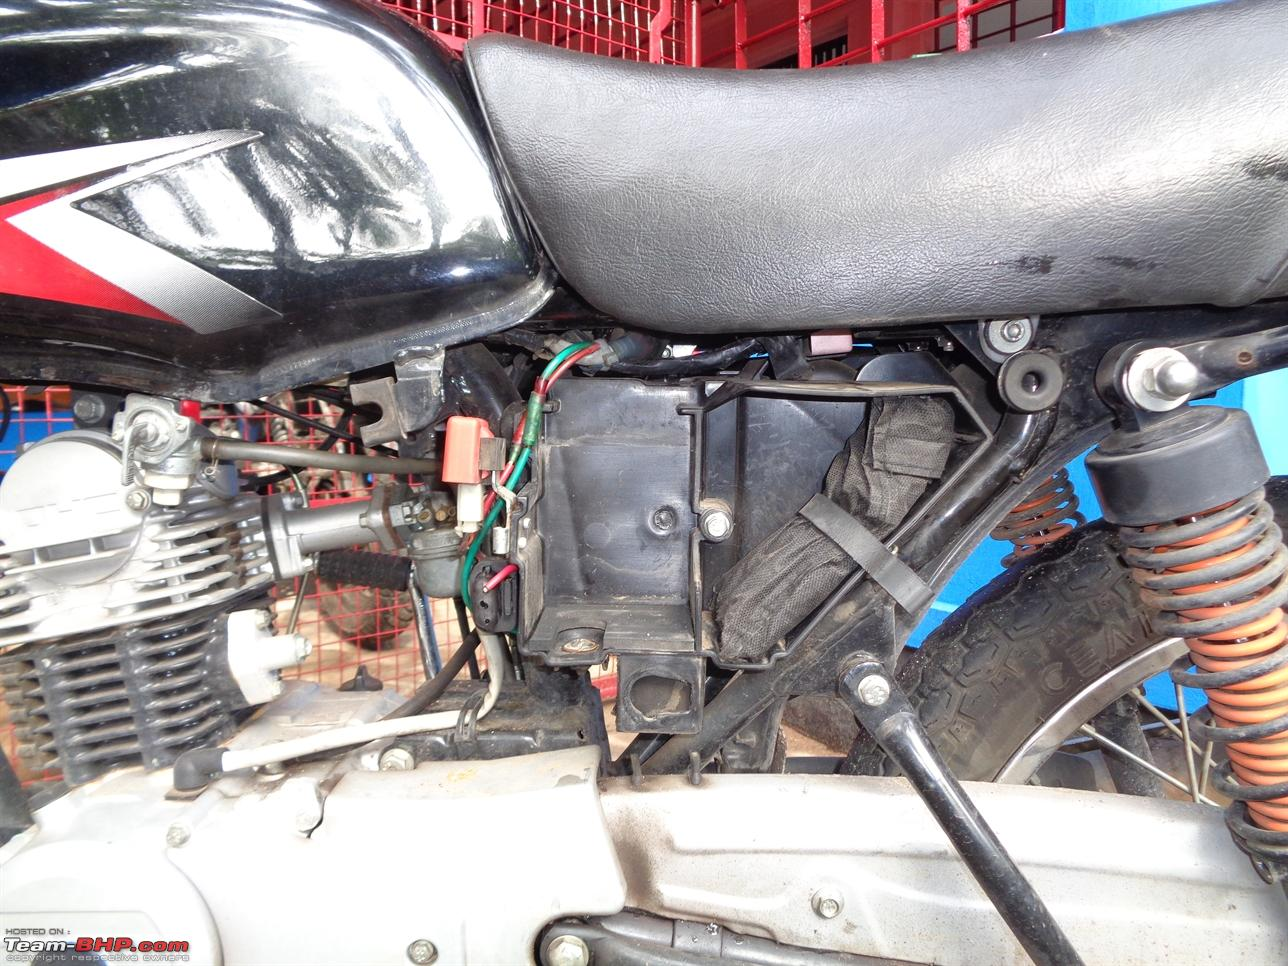 DIY: Eliminating Motorcycle Battery & Adding a Capacitor